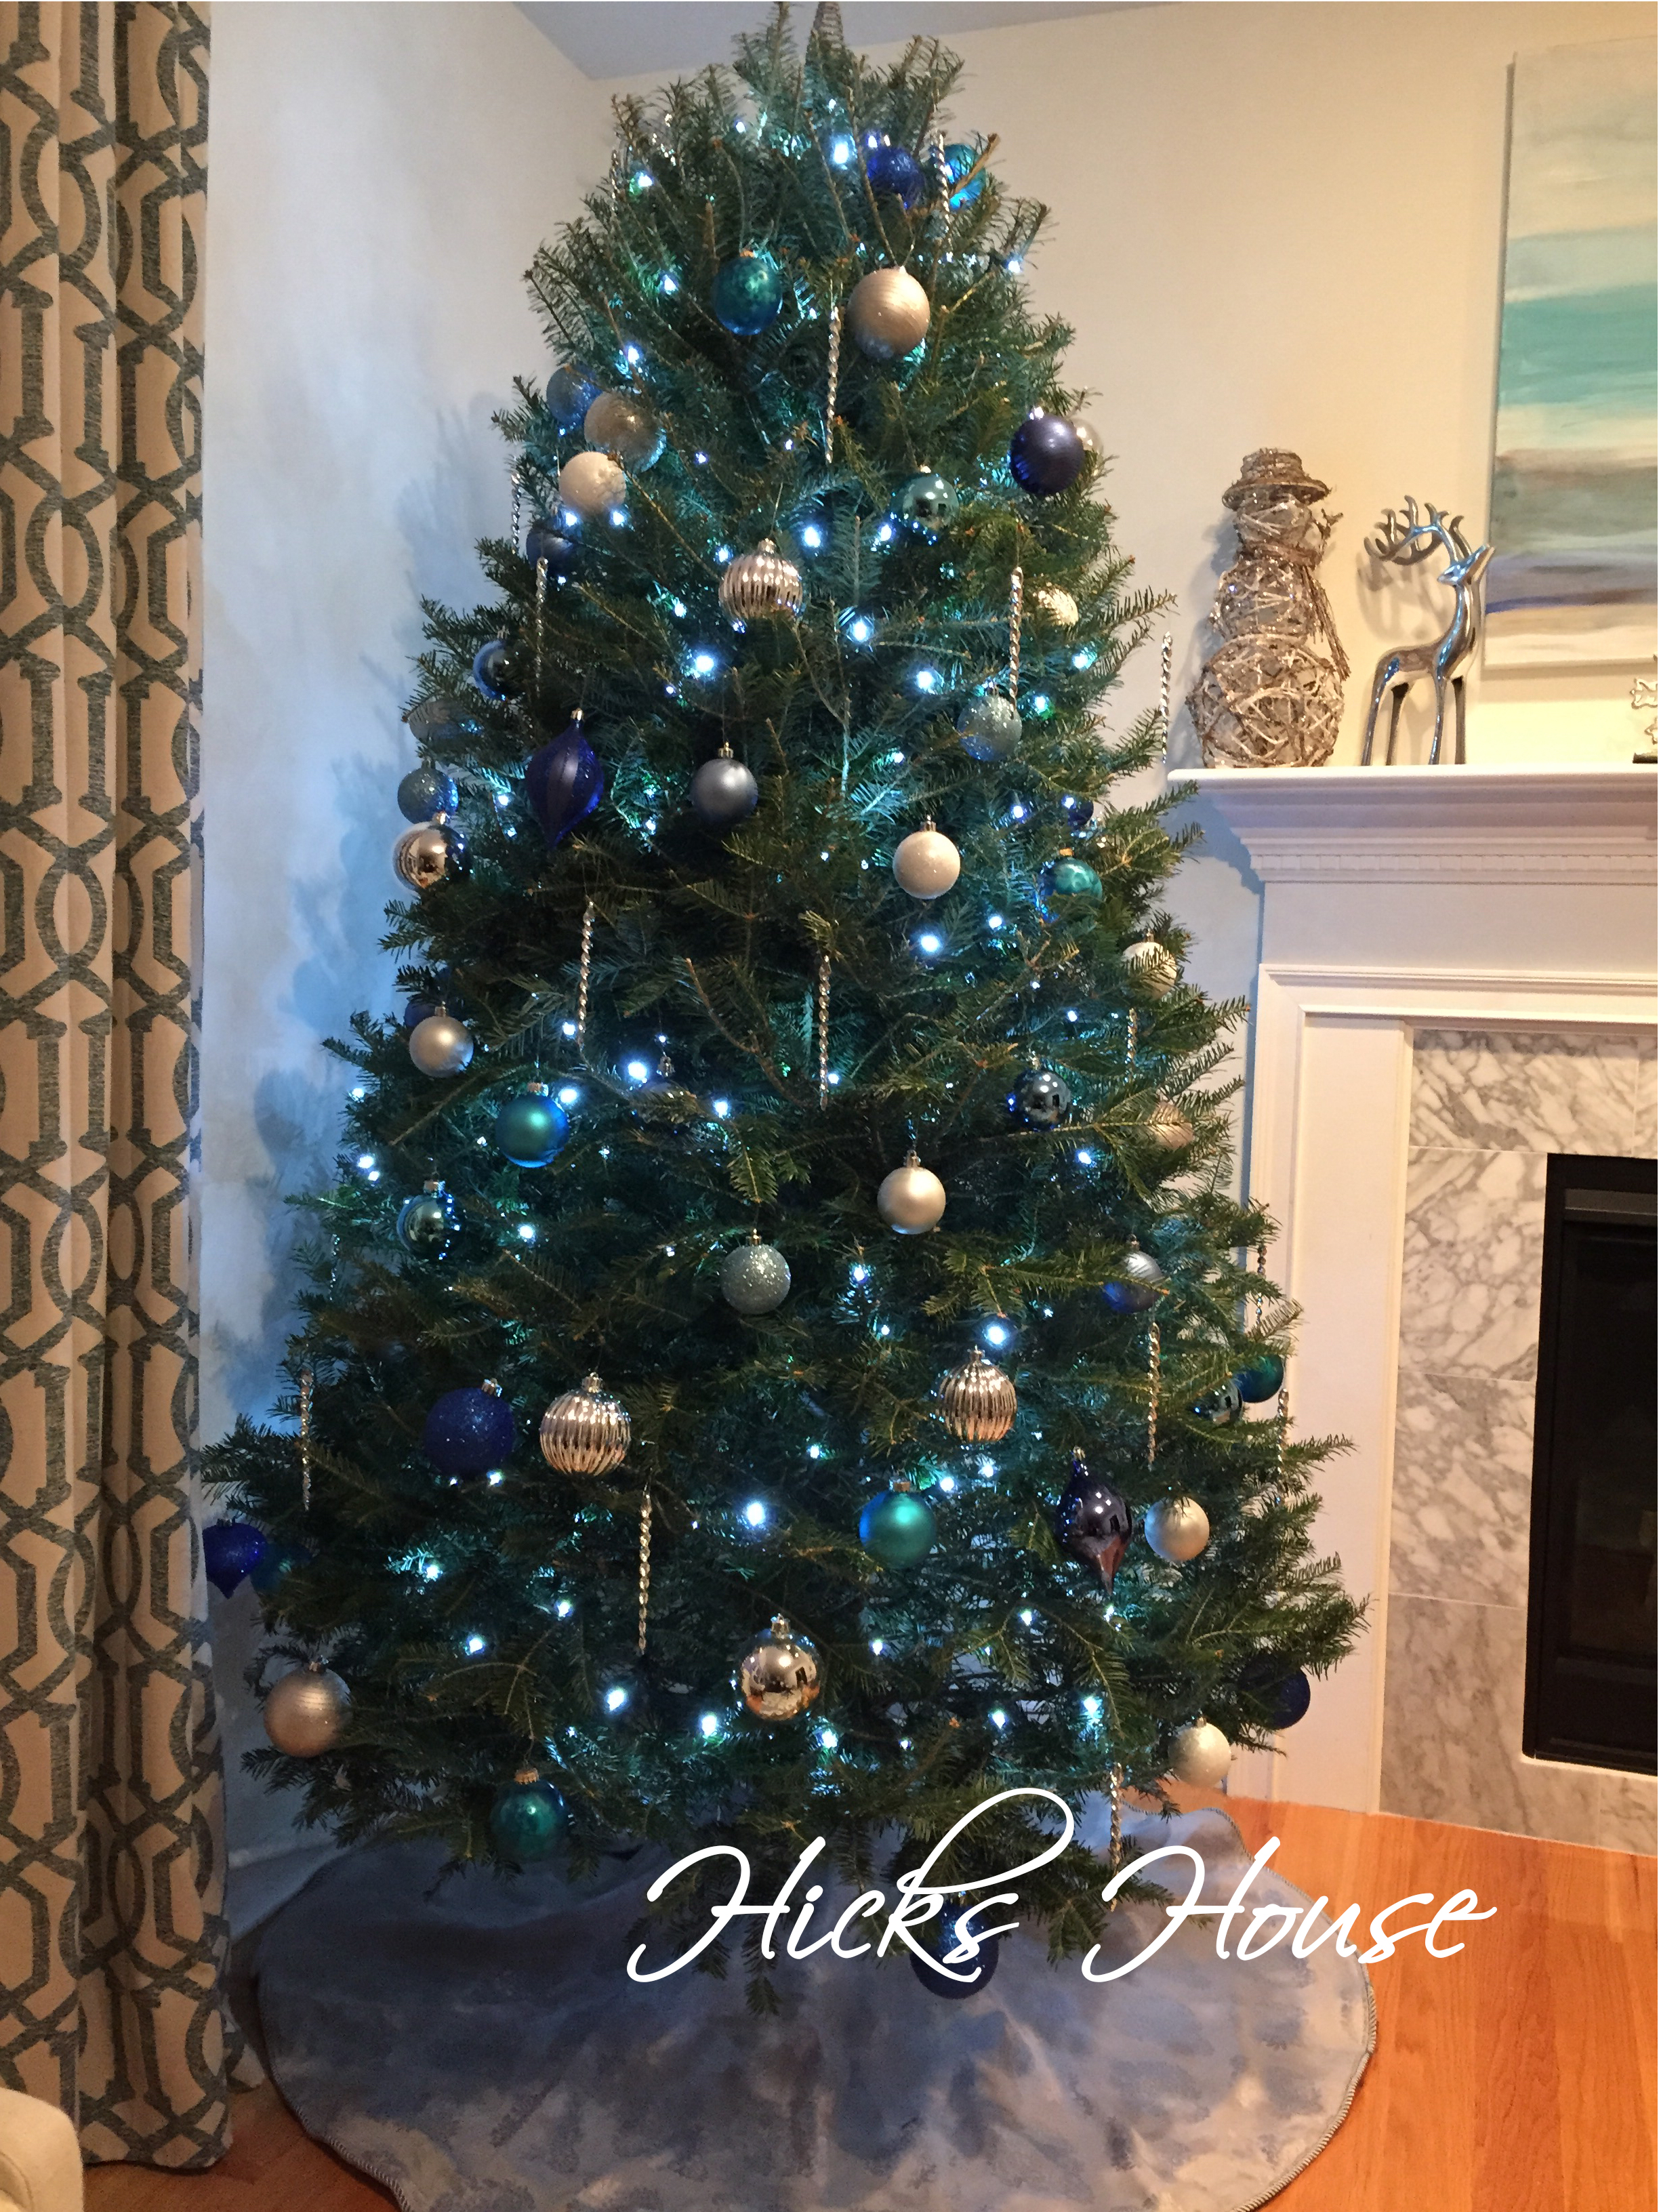 Blue christmas trees decorating ideas - Hicks House Christmas 2014